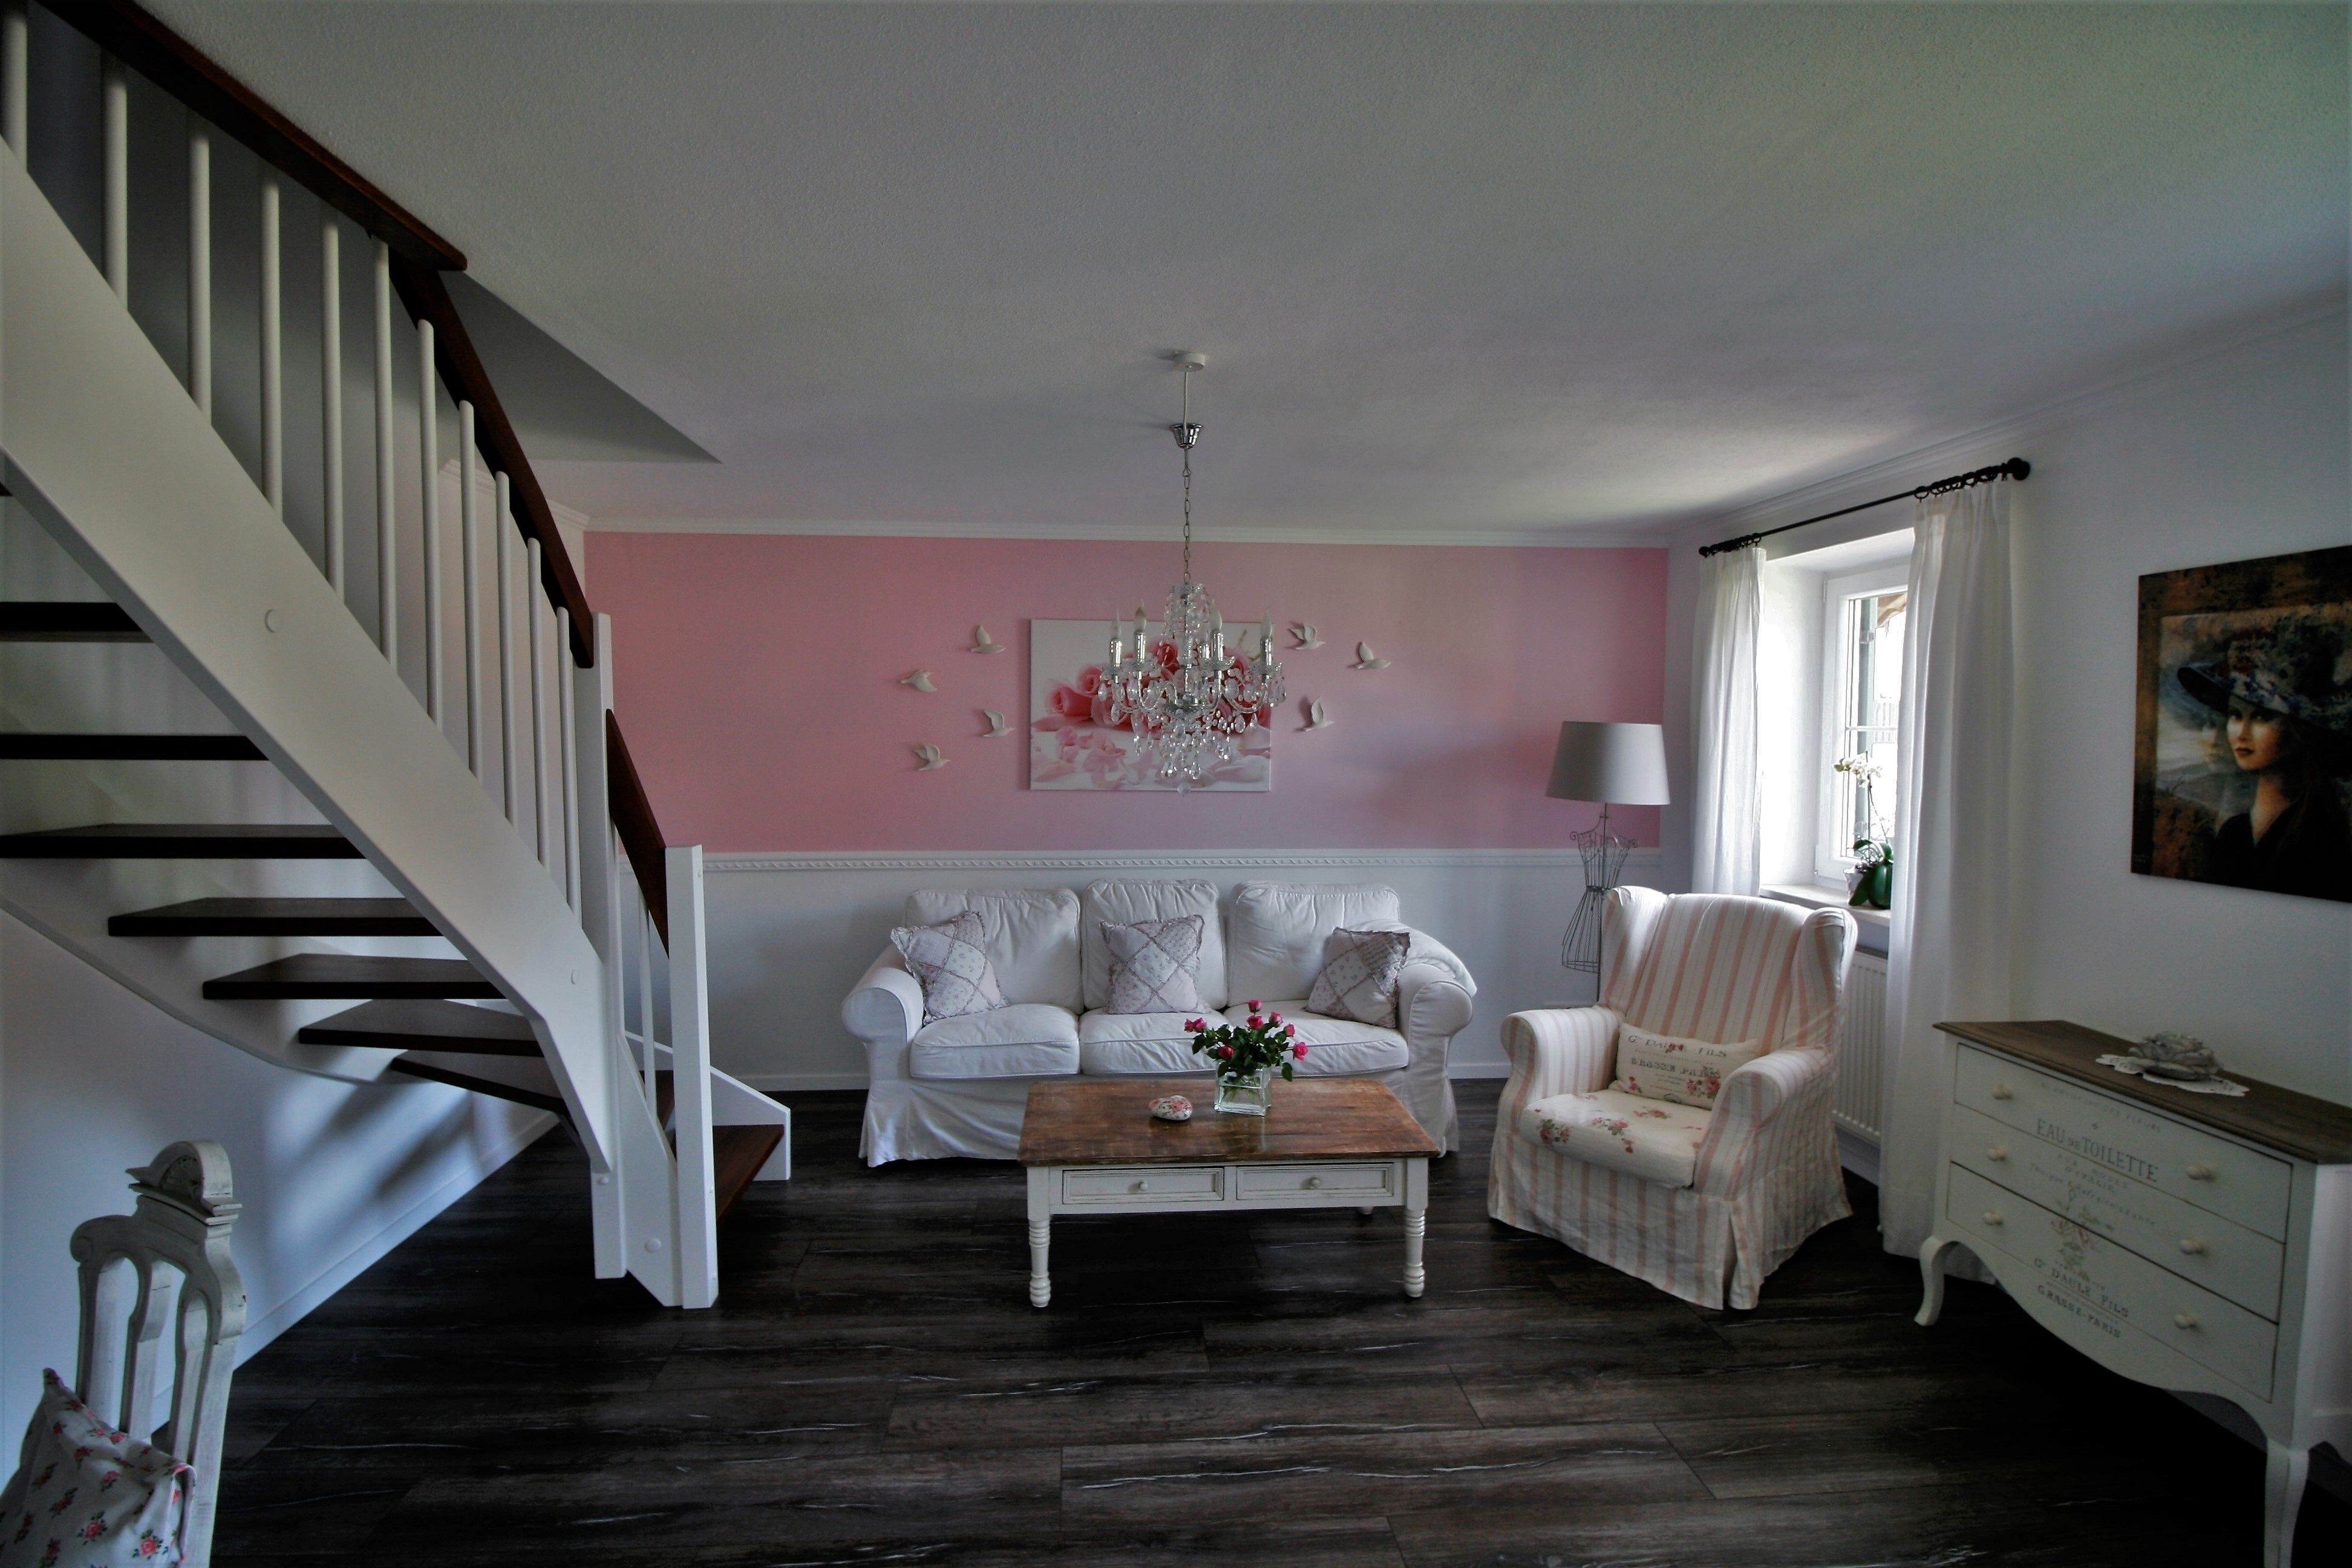 Property with 1 room and garden